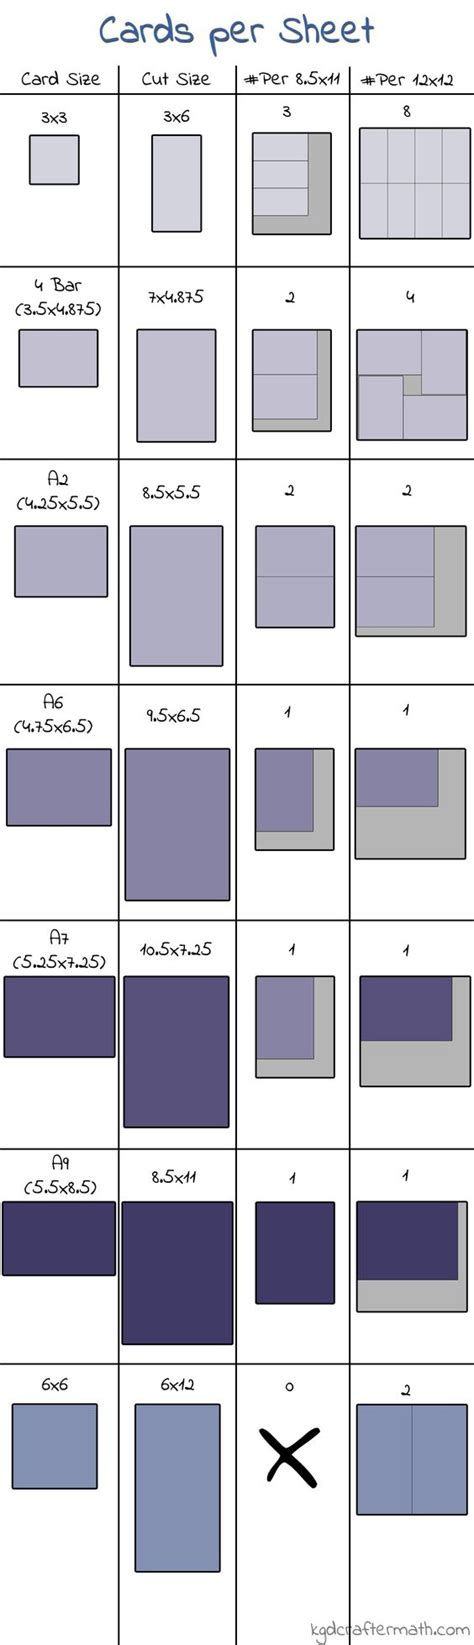 Gift Card Dimensions - pin 1 of 2 card sizes cutting guides for card bases compare size in quot pin